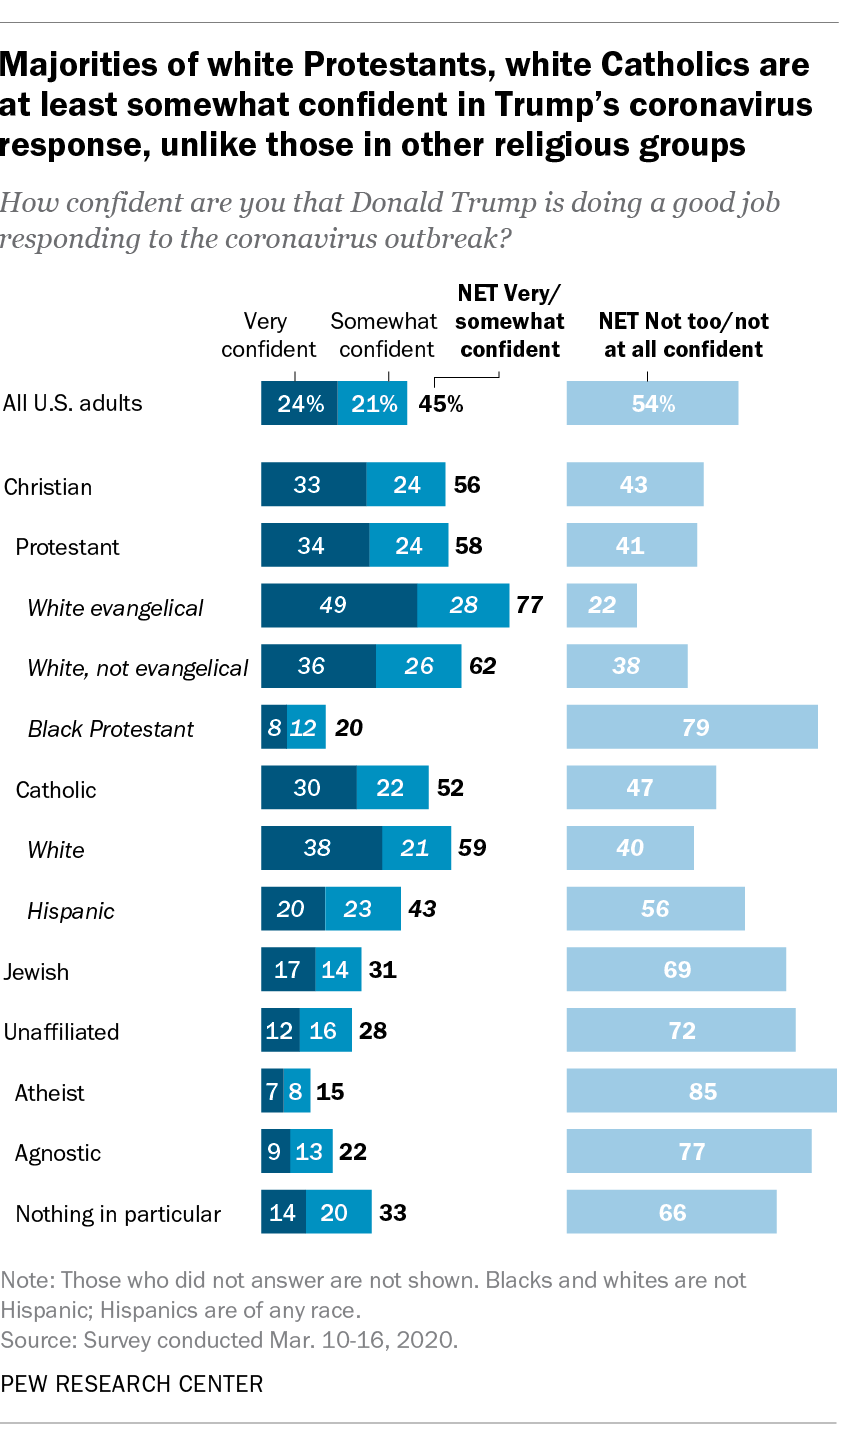 Majorities of white Protestants, white Catholics are at least somewhat confident in Trump's coronavirus response, unlike those in other religious groups